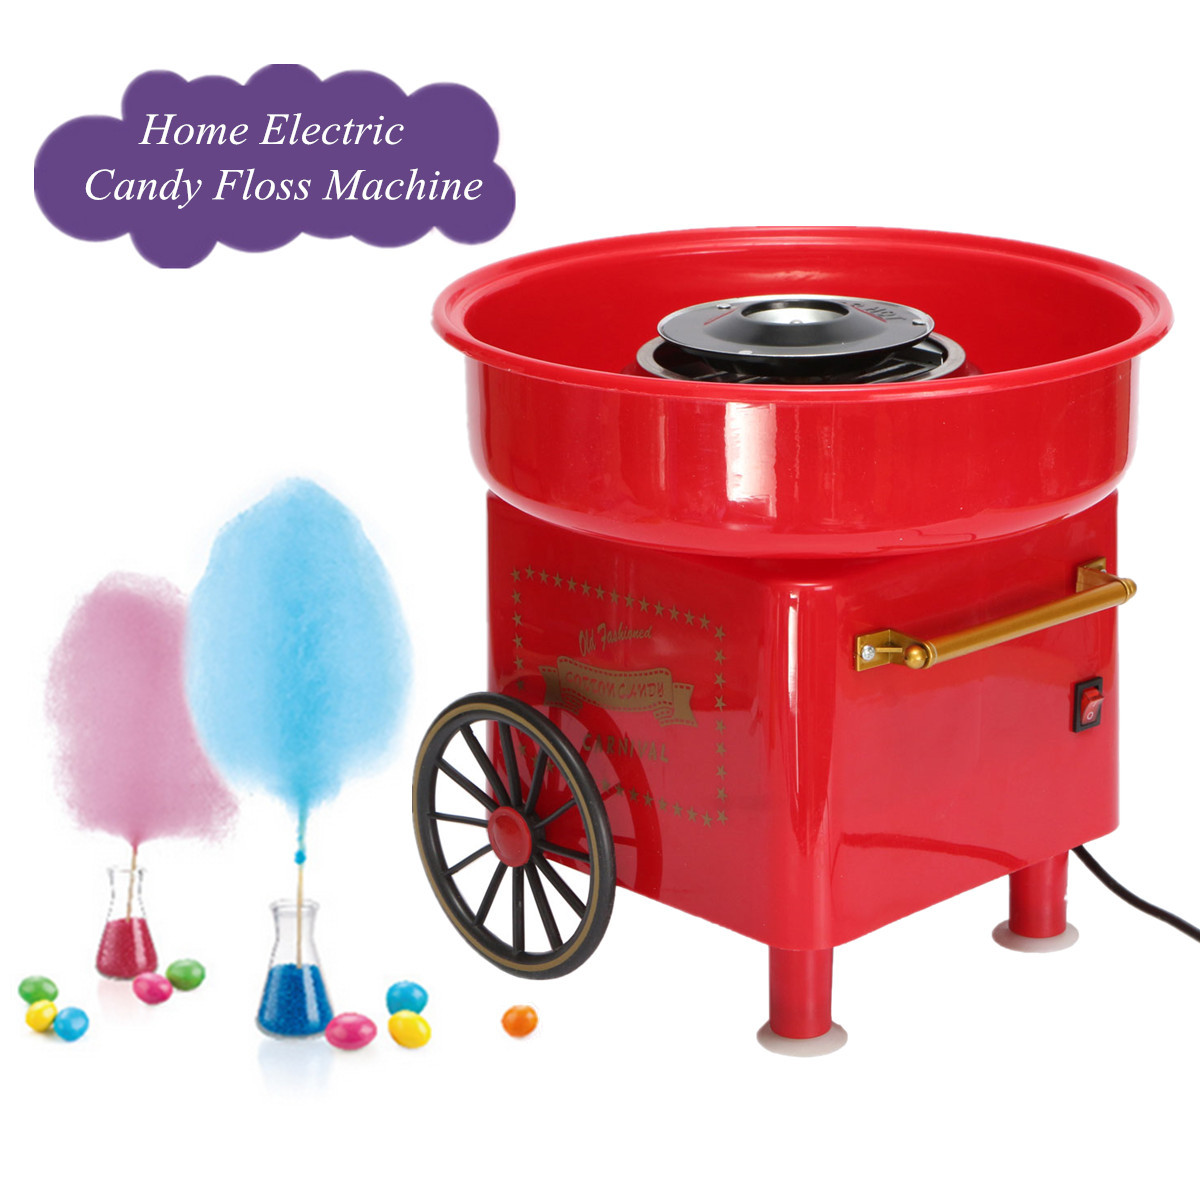 Mini Retro DIY Sweet Cotton Candy Machine Portable Electric Icing Machine Home Party Creatives Gift 450-550W 240V EU Plug